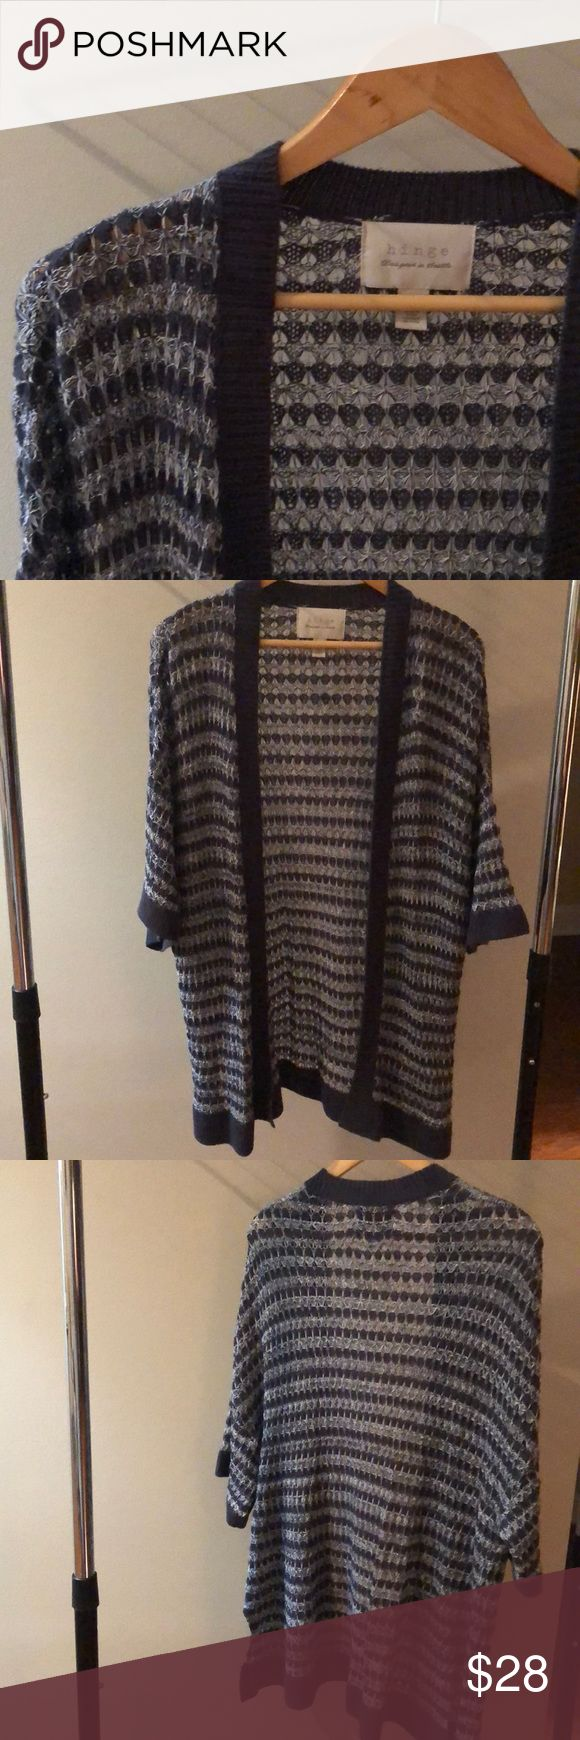 Hinge Blue and White Cardigan EUC only worn a few times. This short sleeved long Cardigan is not for staying warm, but for a stylish layering look when the weather turns warm. hinge Sweaters Cardigans